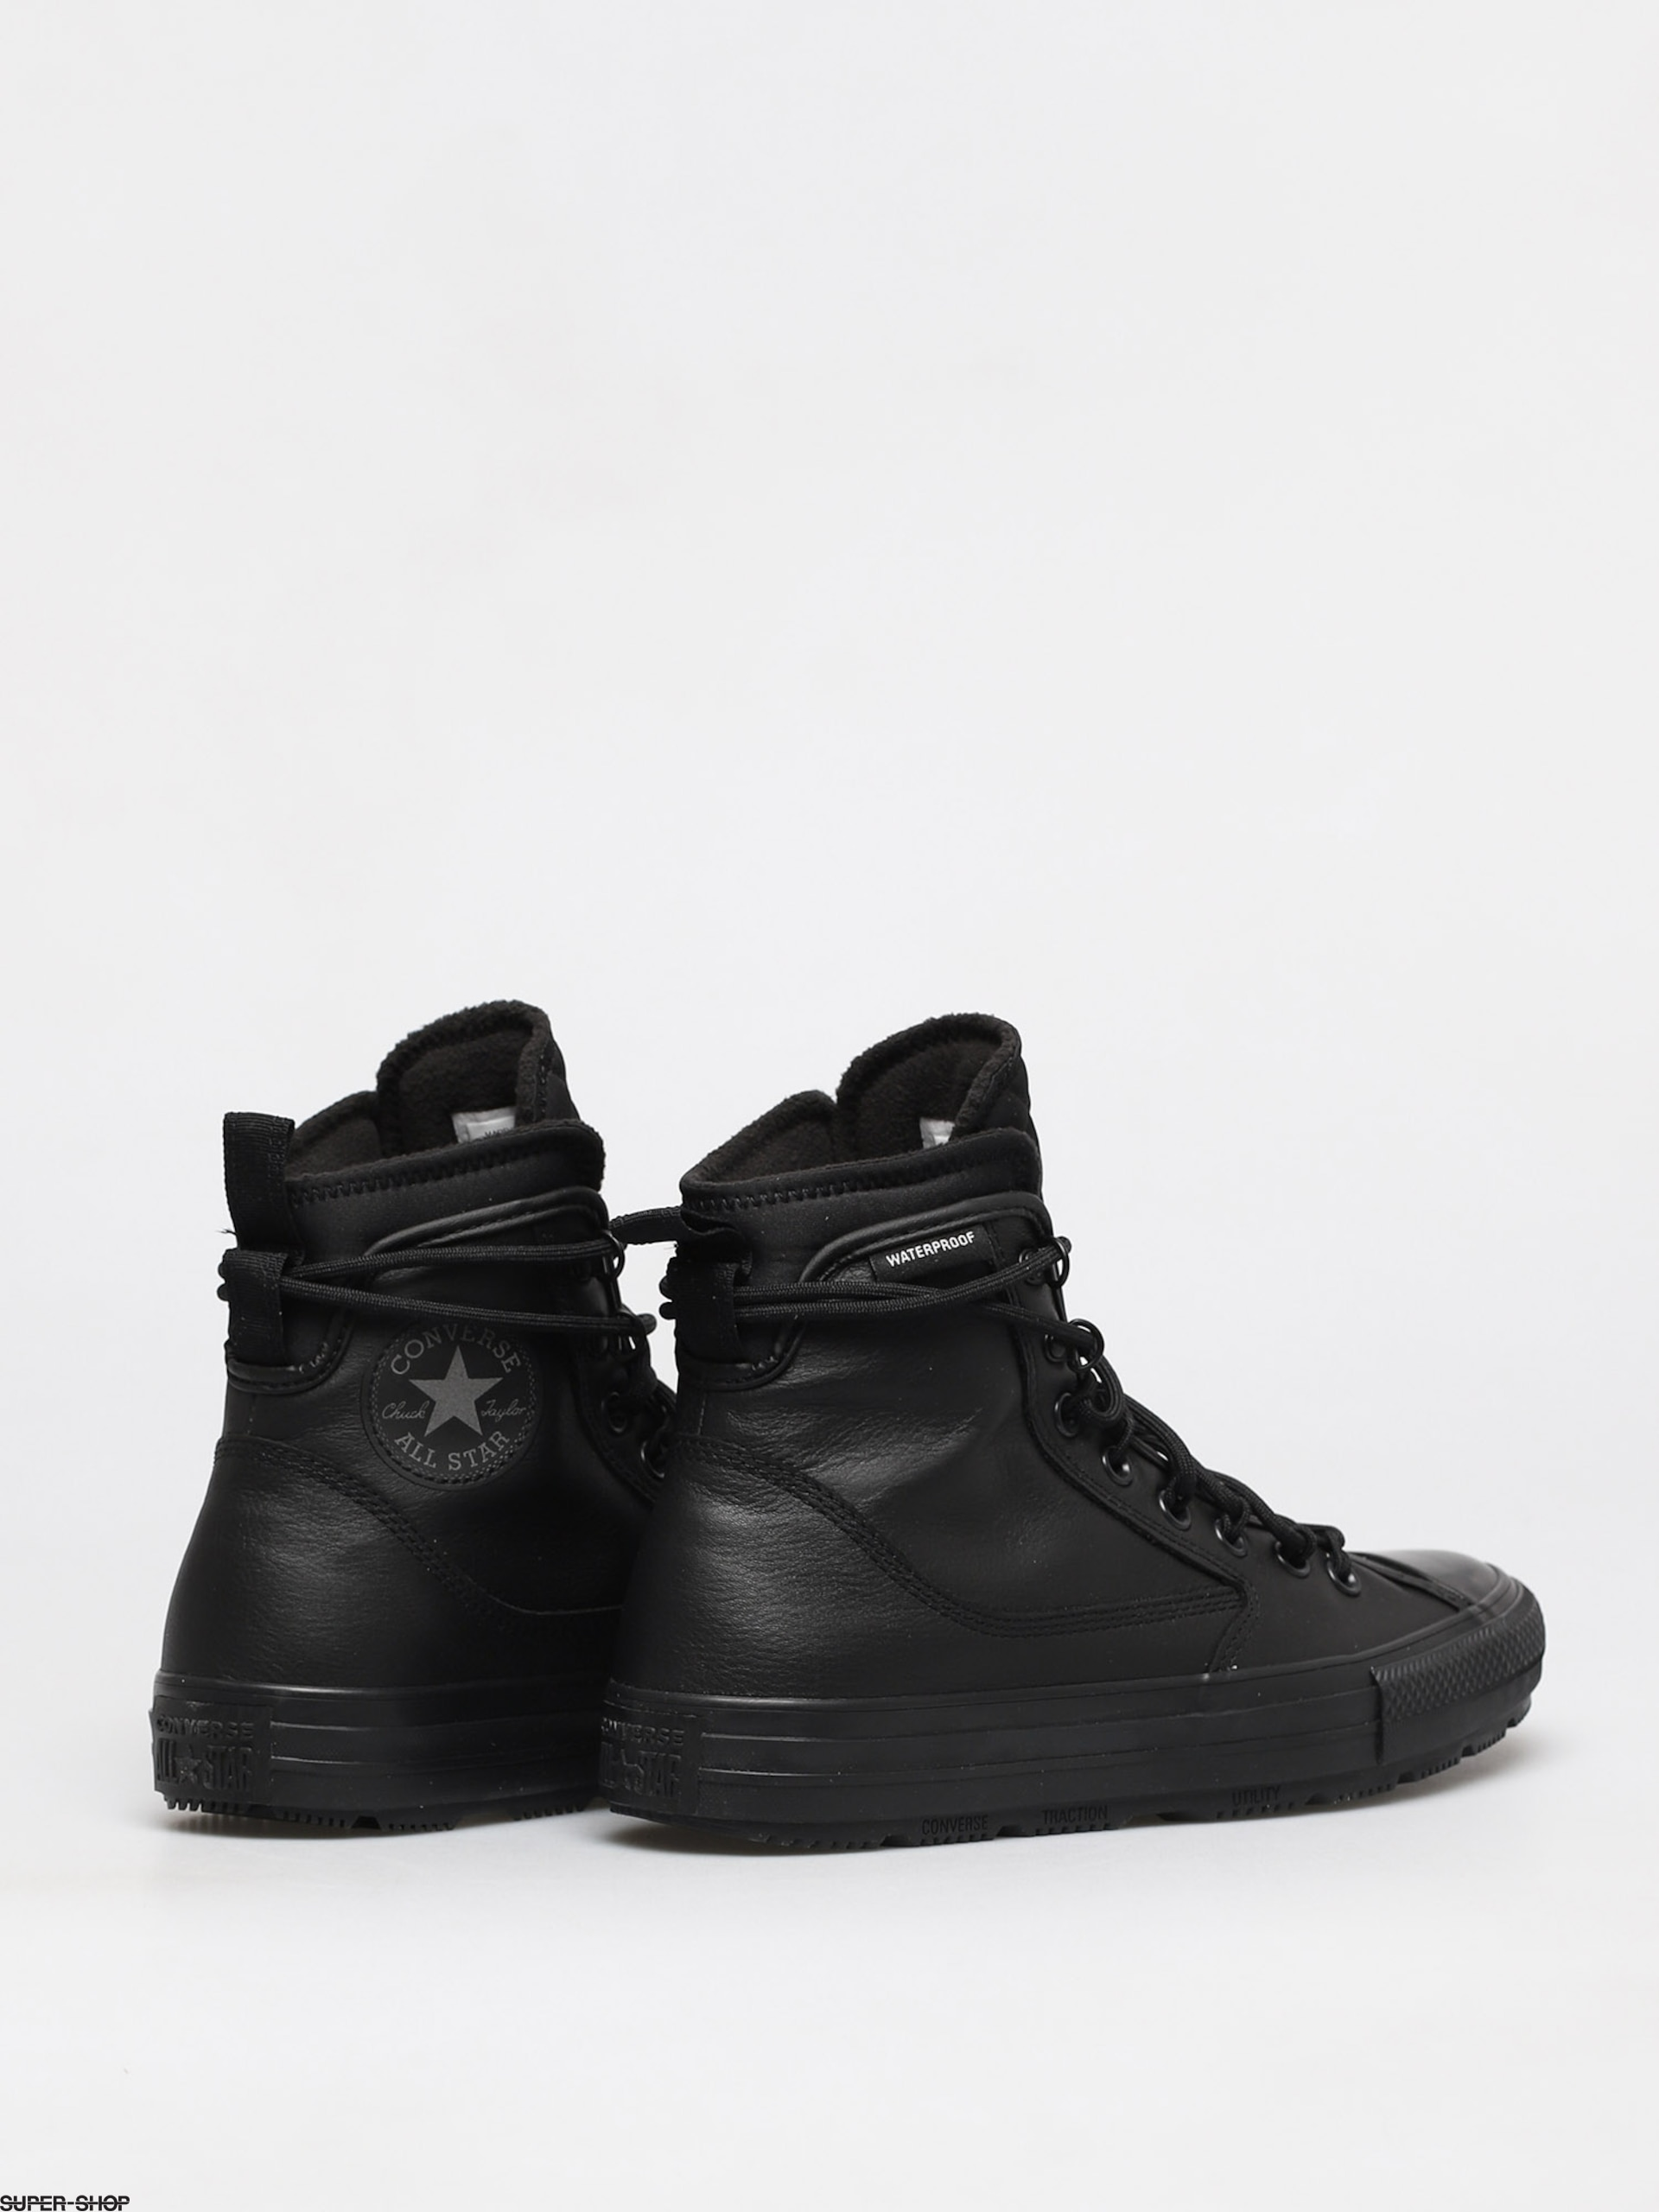 Converse CTAS All Terrain Leather Shoes